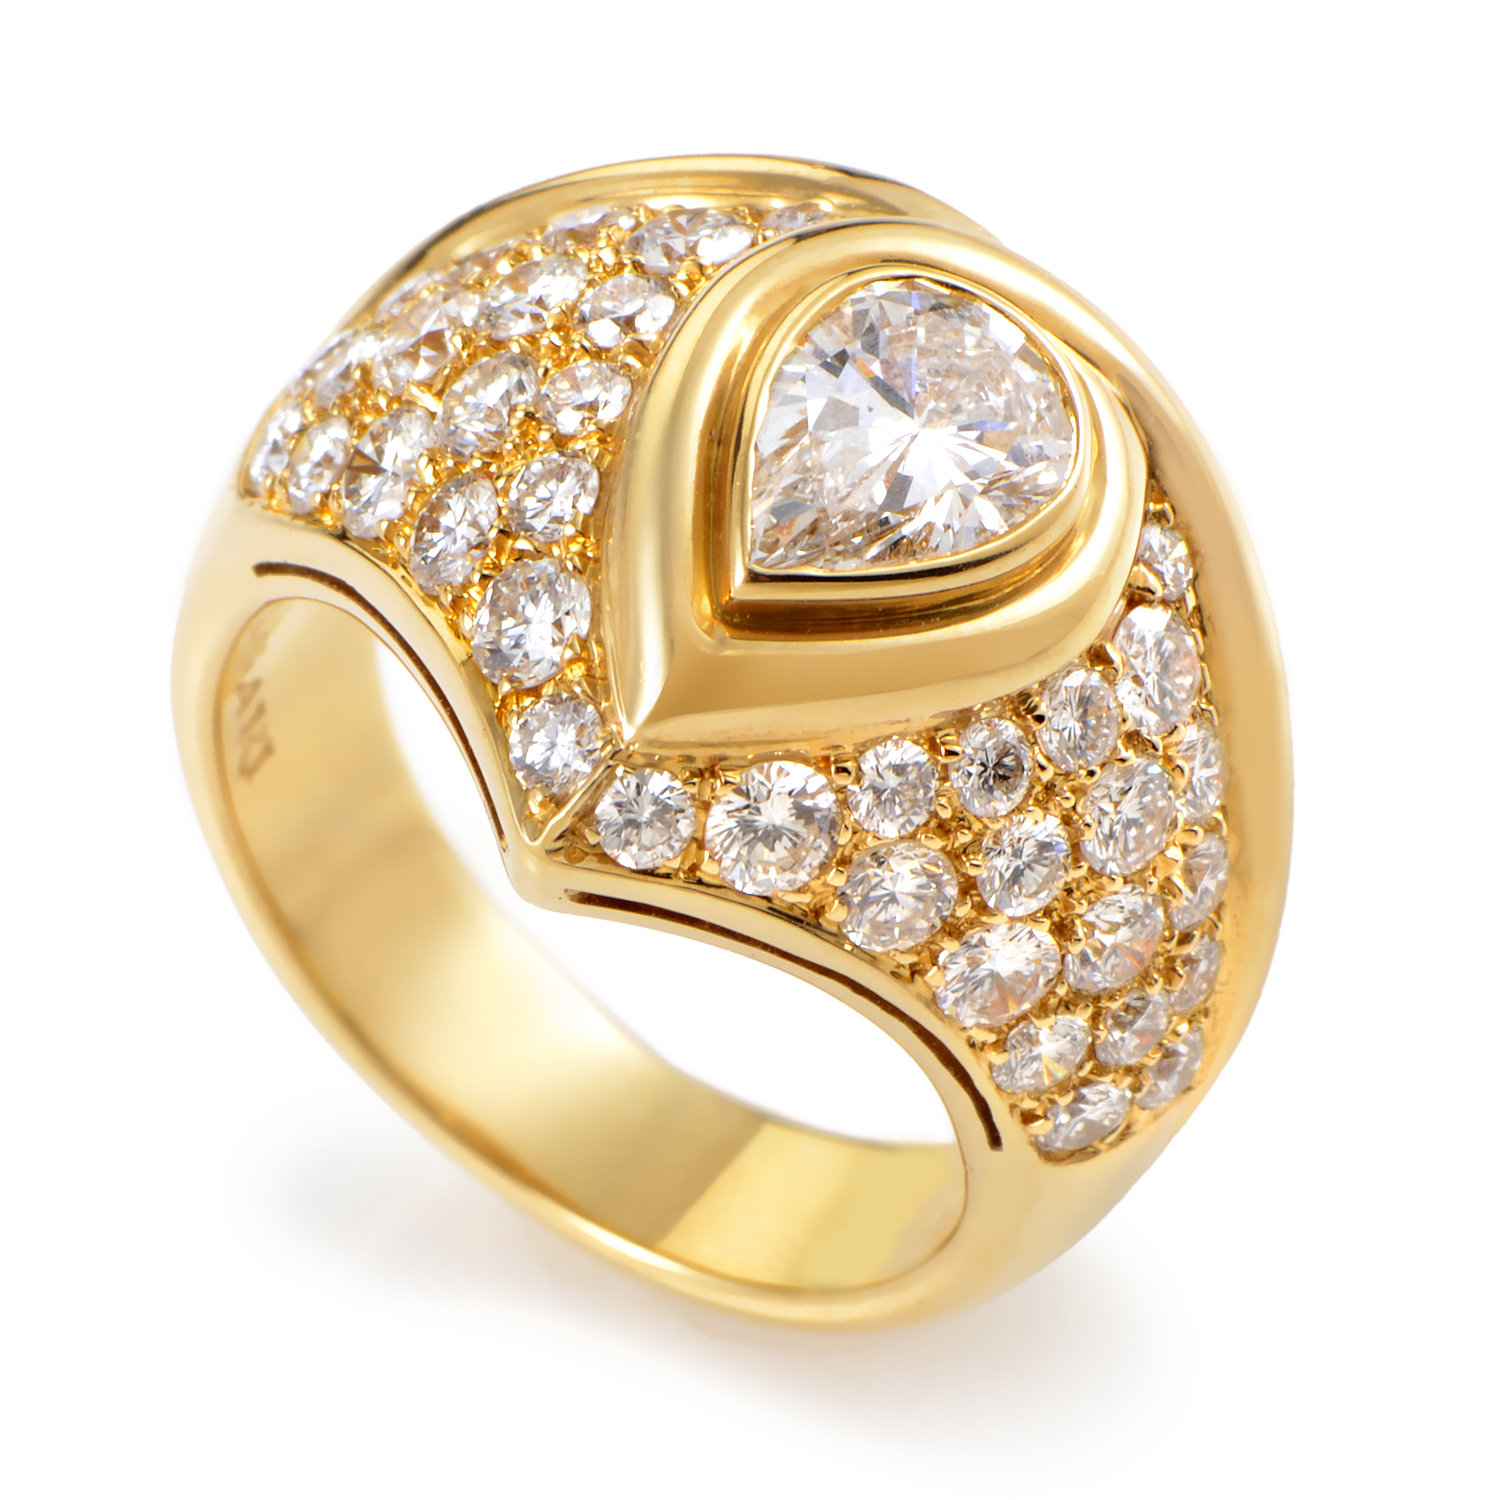 Bvlgari Womens 18K Yellow Gold Pear and Round Diamond Ring